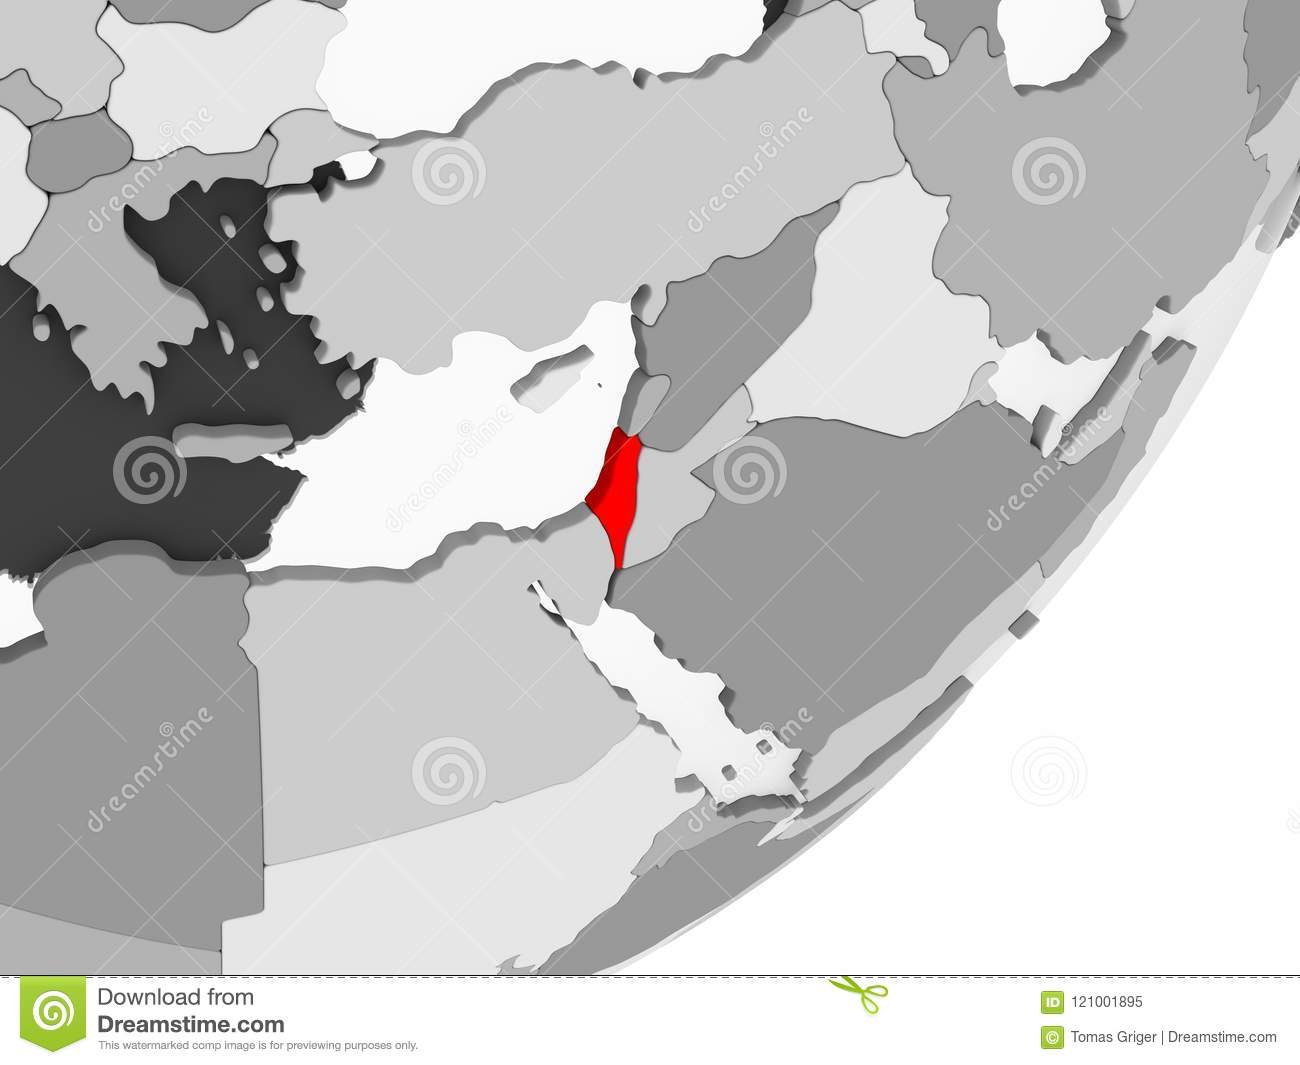 Israel in red on grey map stock illustration illustration of world download israel in red on grey map stock illustration illustration of world 121001895 gumiabroncs Images